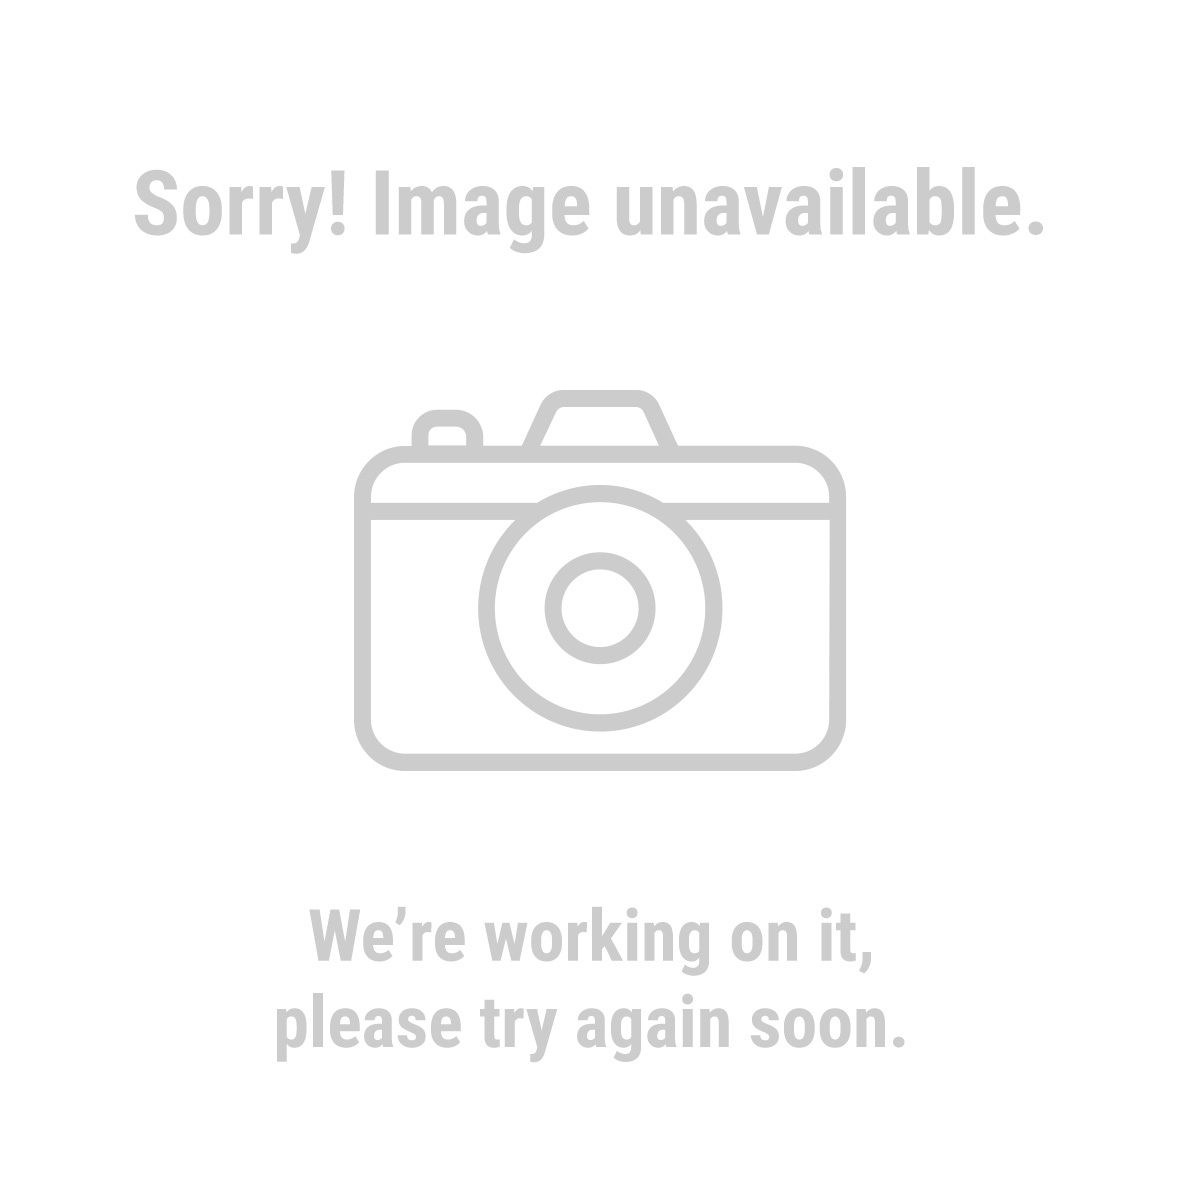 "Chicago Electric Welding Systems 42913 0.030""  E71T-GS Flux Core Welding Wire, 2 Lbs."